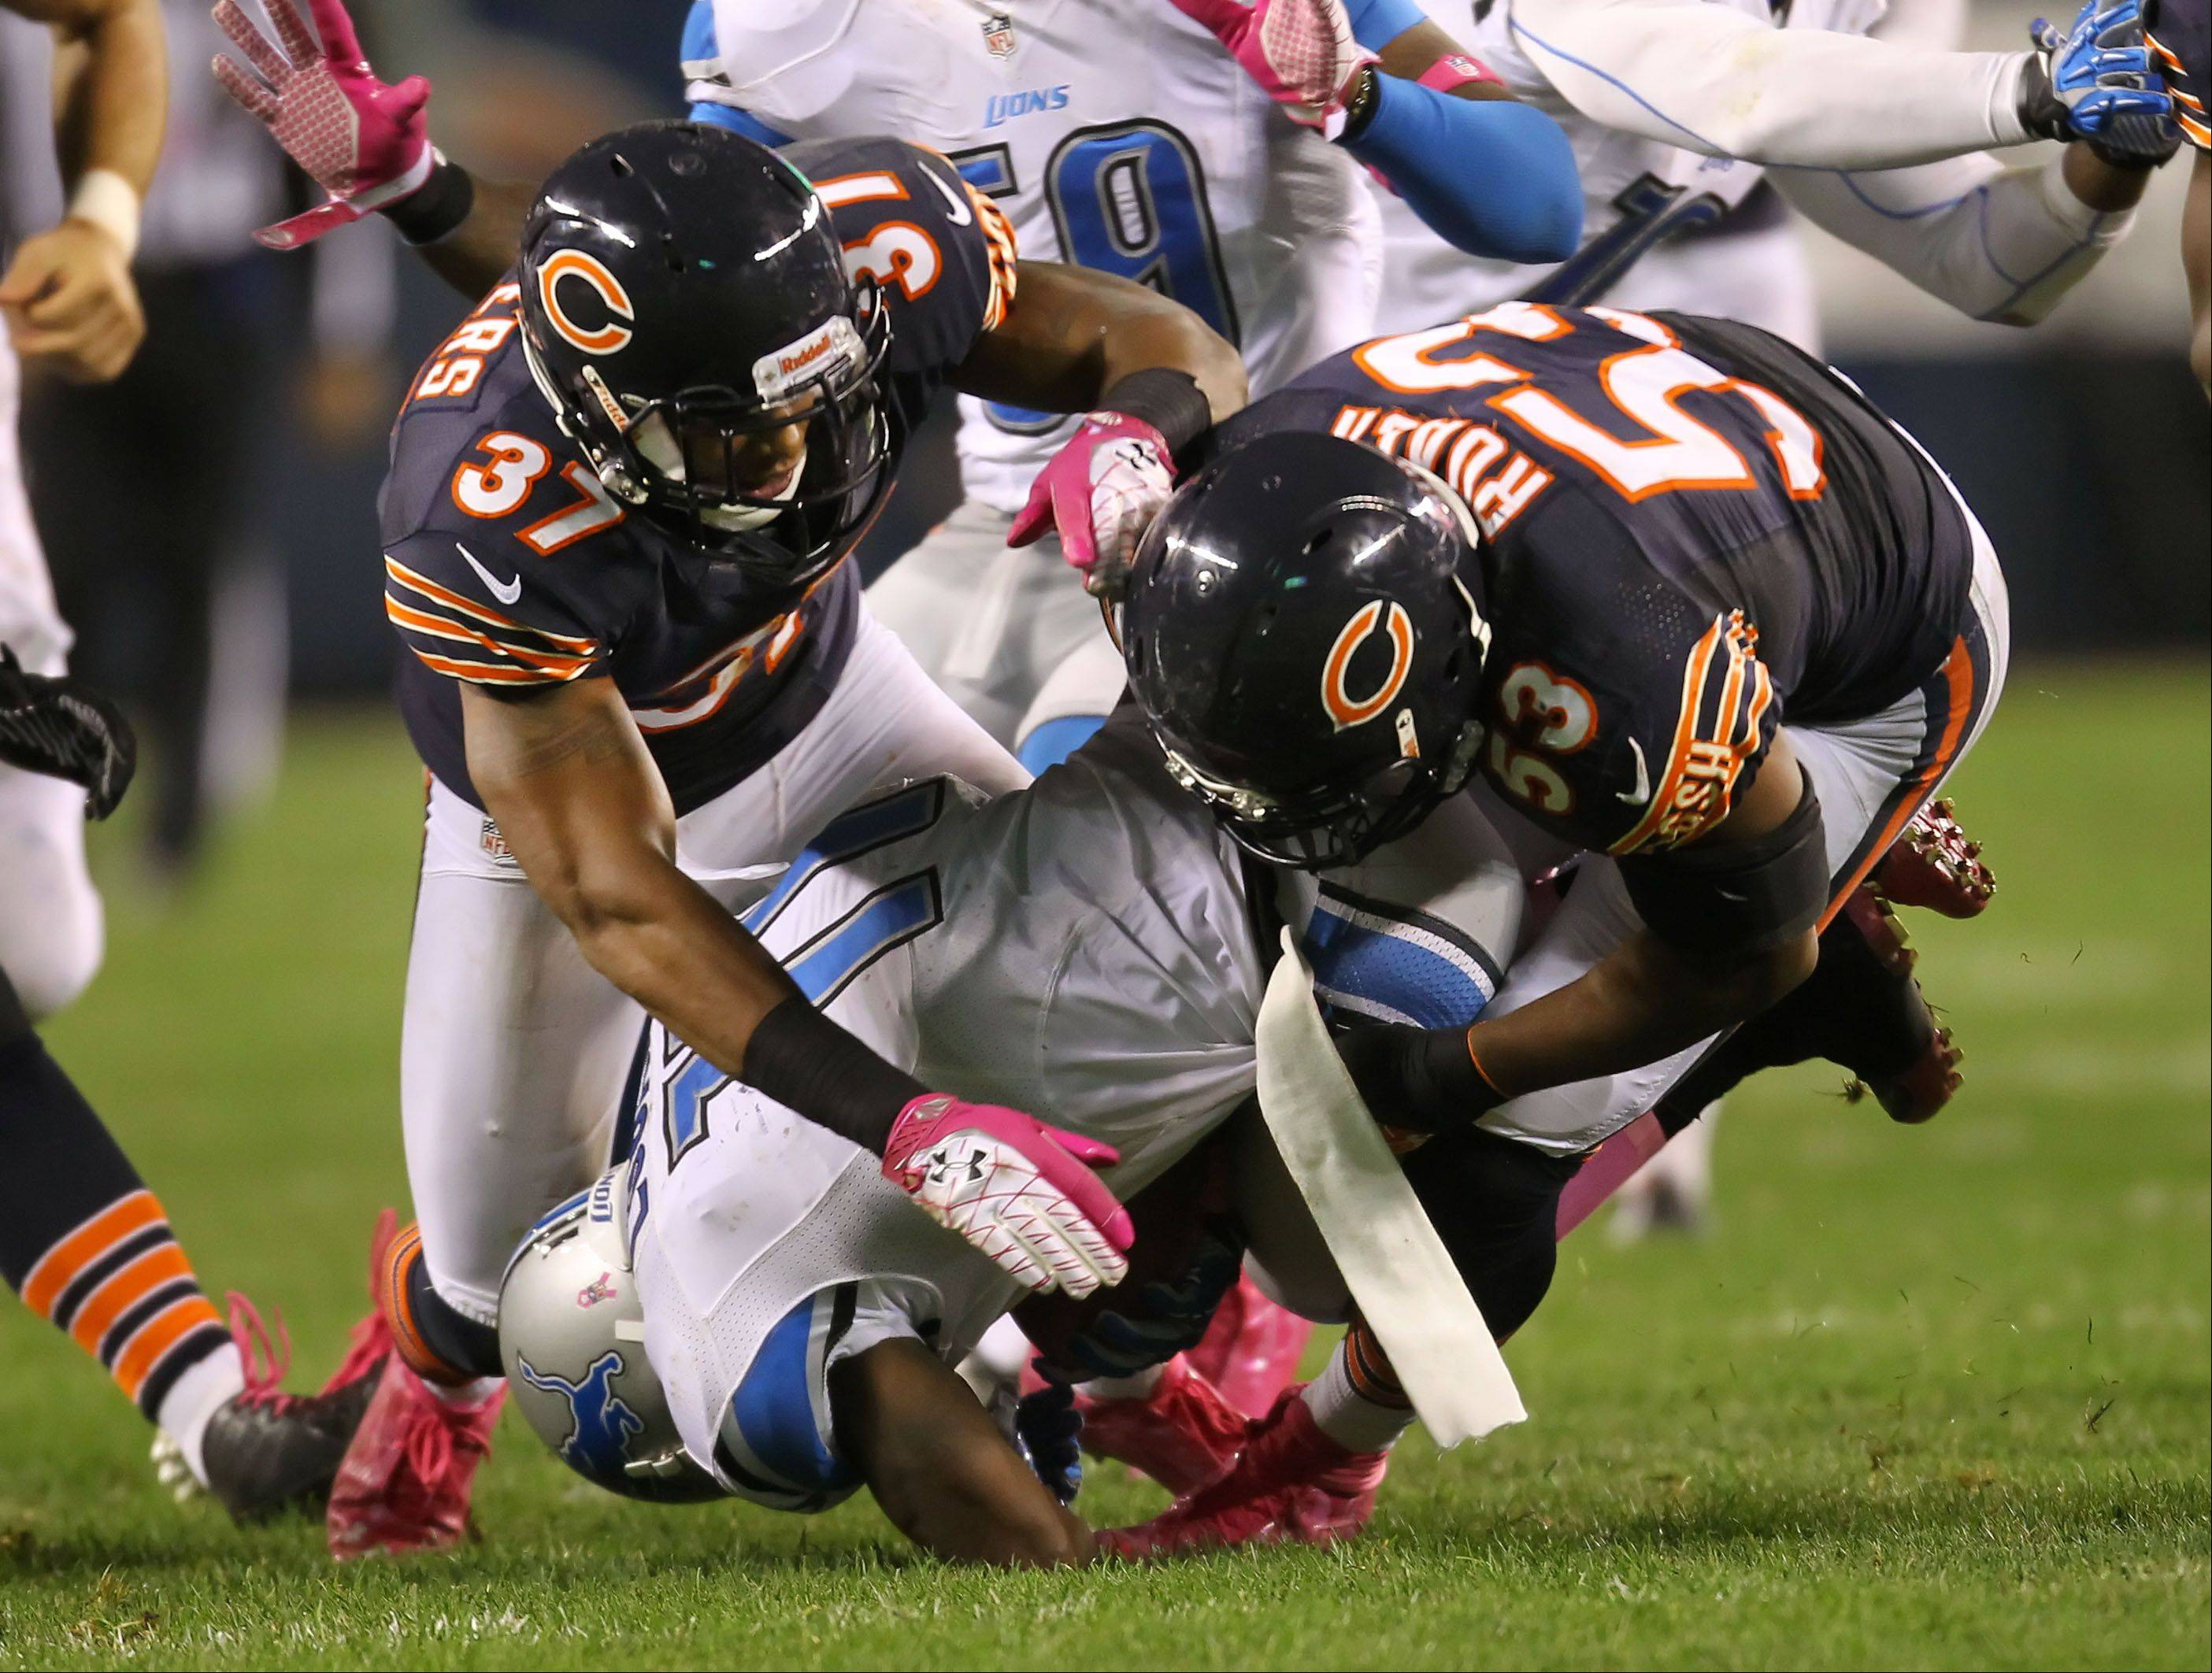 Bears free safety Anthony Walters and linebacker Nick Roach combine to tackle wide receiver Stefan Logan of the Lions on Monday night at Soldier Field,